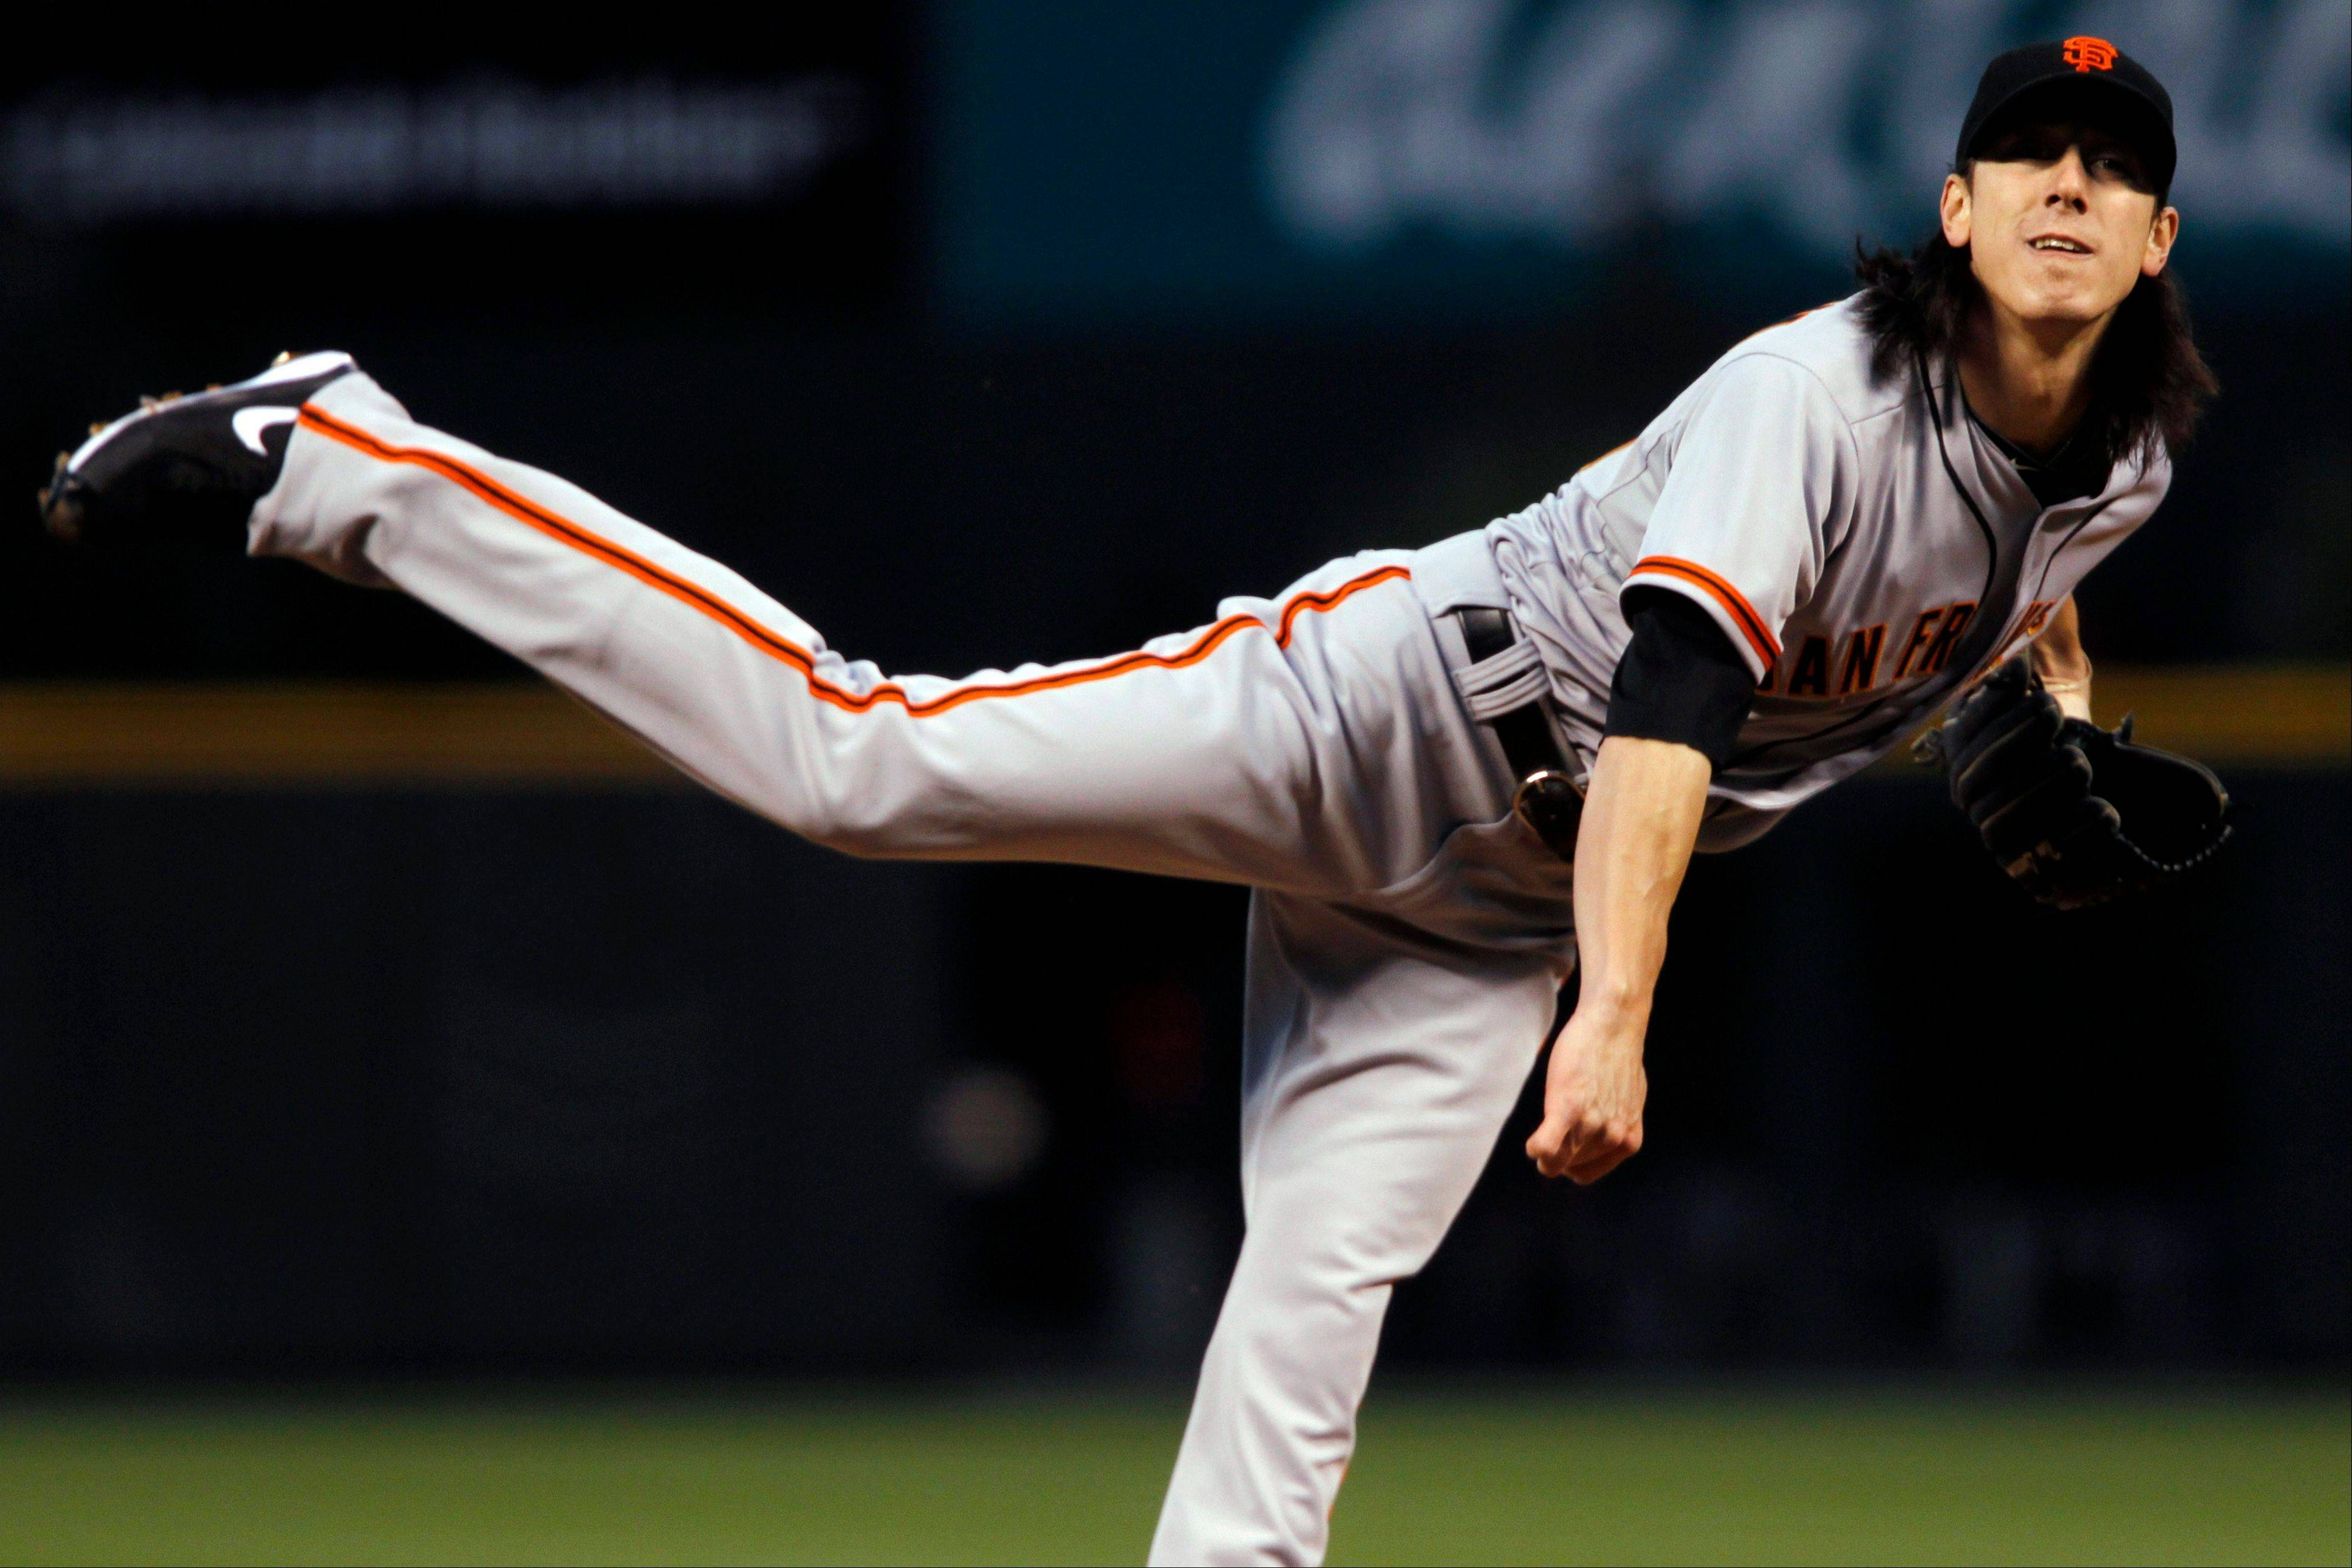 San Francisco Giants starting pitcher Tim Lincecum struck out eight and walked four Wednesday in a road win over the Colorado Rockies.